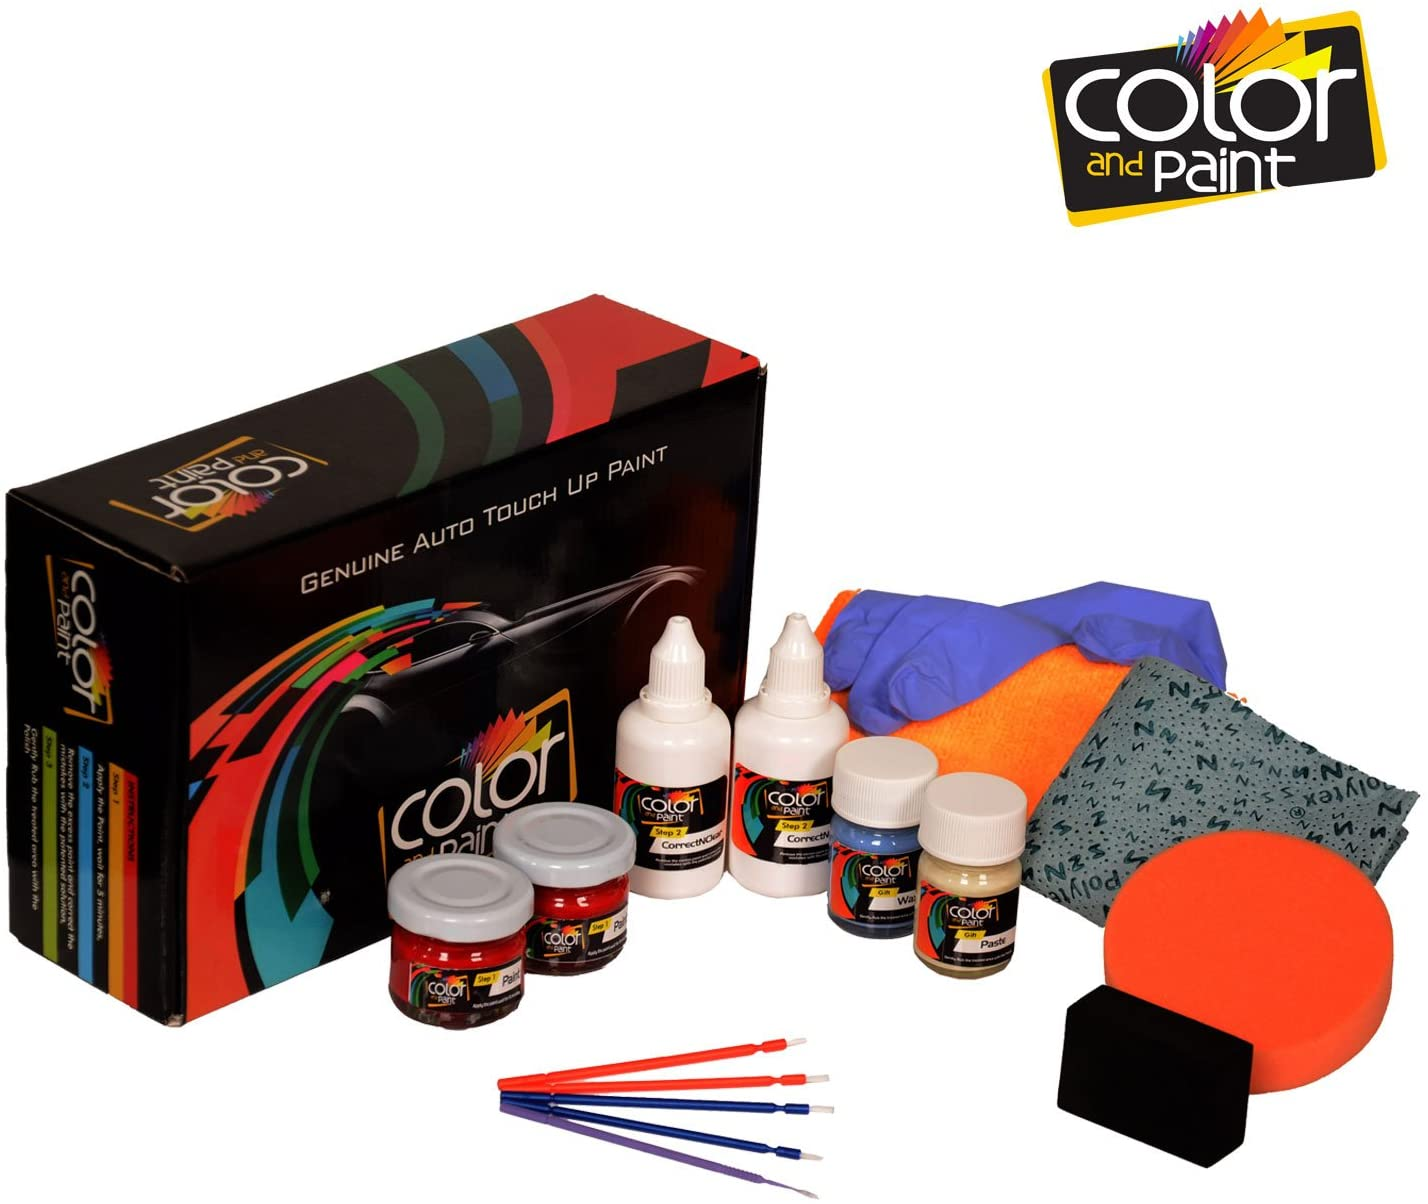 Kia Optima/Glittering MET - K3G / Color and Paint Touch UP Paint System for Paint Chips and Scratches/Basic Care